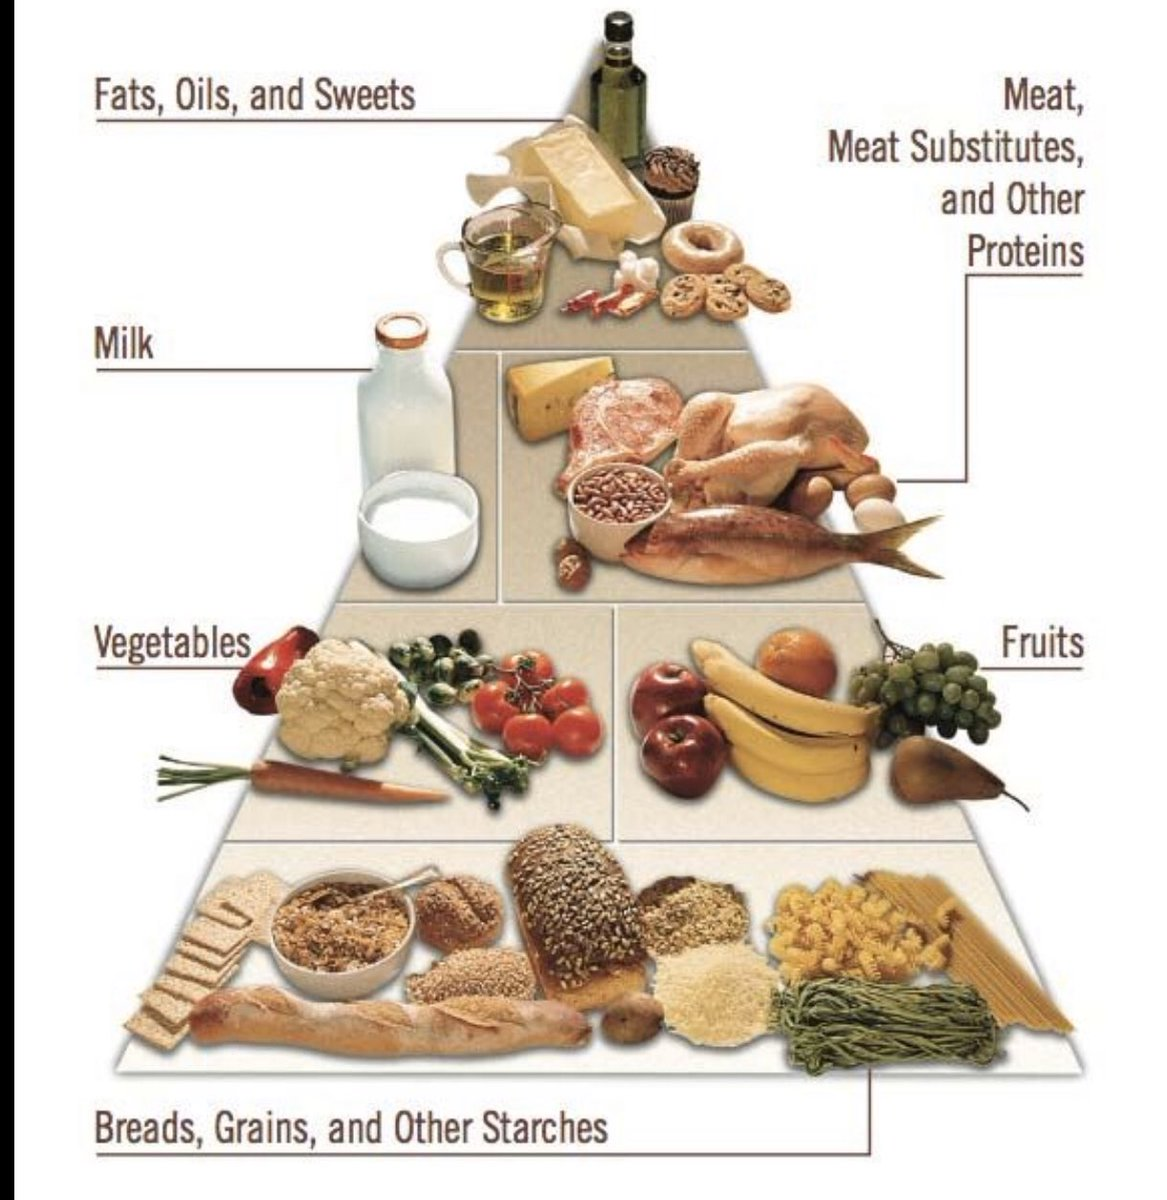 The 2019 Diabetes Foundation Food Pyramid. This is showing how to get Diabetes right?